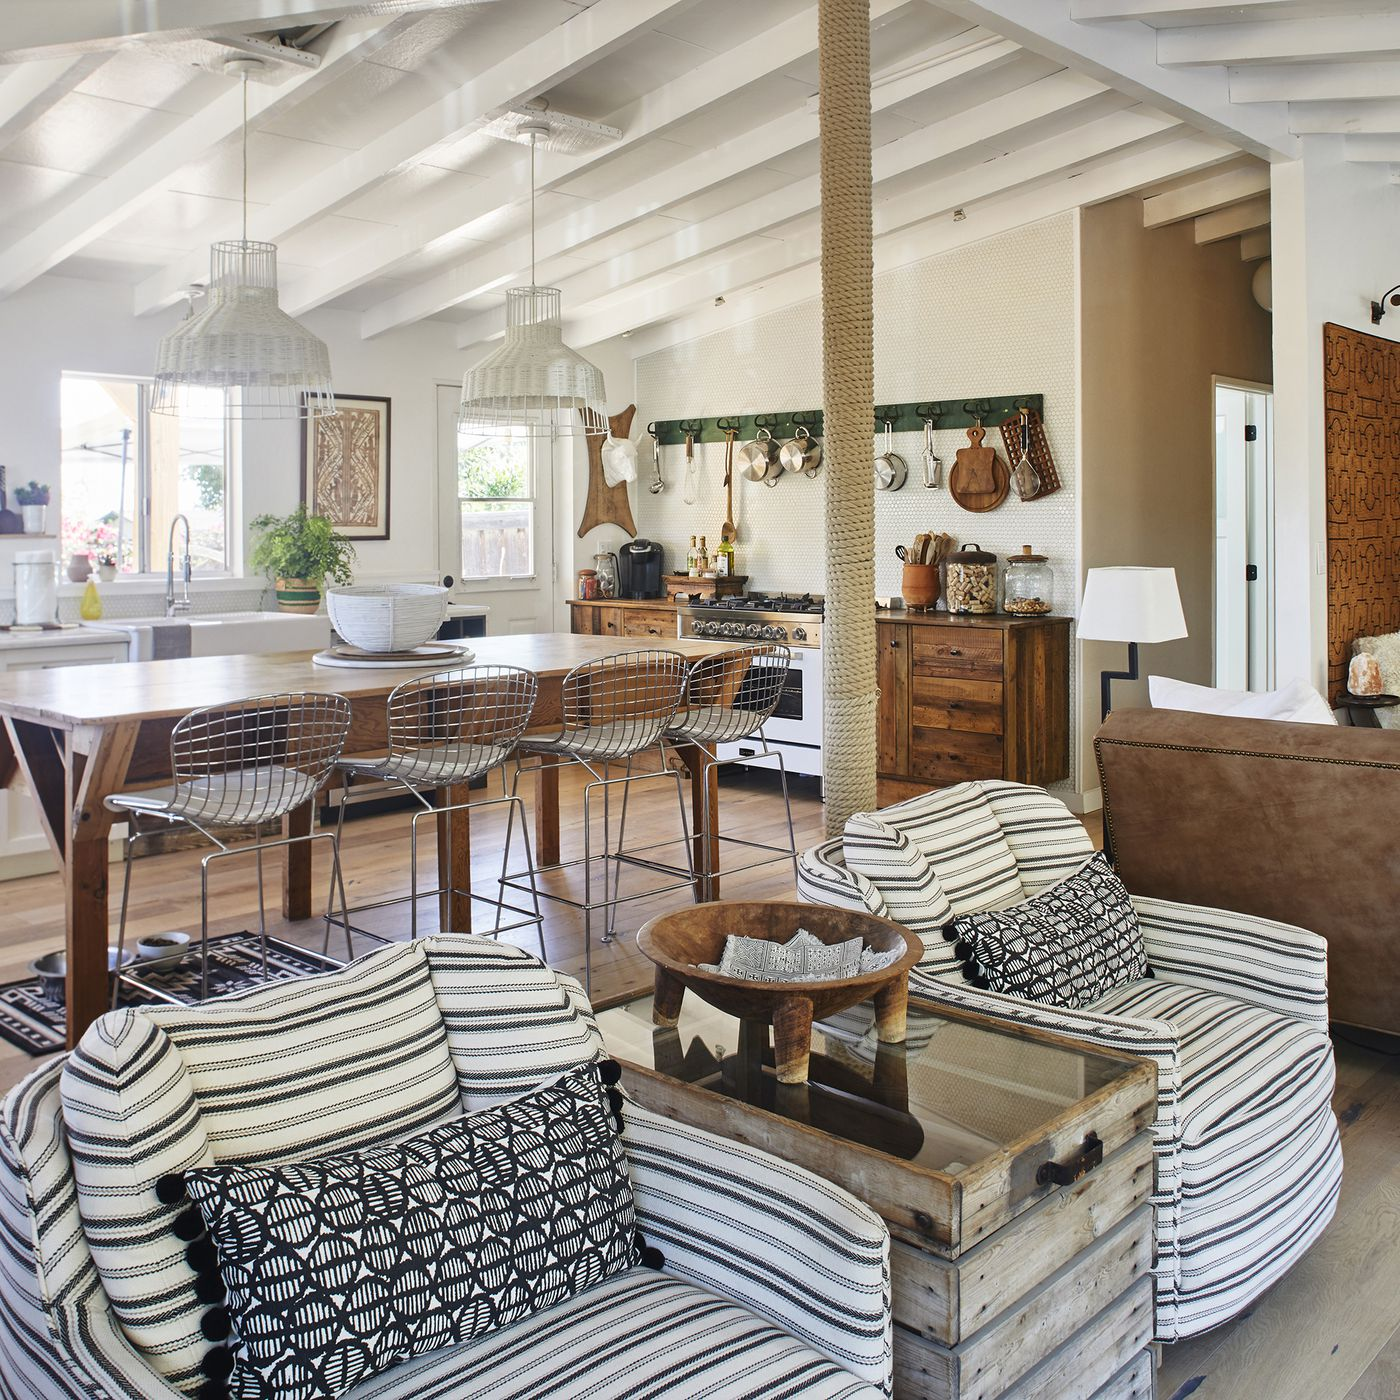 Jennifer Maxcy's ranch home gets a modern makeover - Curbed LA on roadhouse interior design, ranch house decor, socal style interior design, ranch house awnings, ranch house house, prefab interior design, ranch house furniture, summer cottage interior design, ranch house curb appeal landscaping, duplex interior design, home interior design, ranch house basement ideas, fabric interior design, farm interior design, ranch house outdoor patio, ranch house plumbing, antique store interior design, split-level interior design, ranch house illustration,